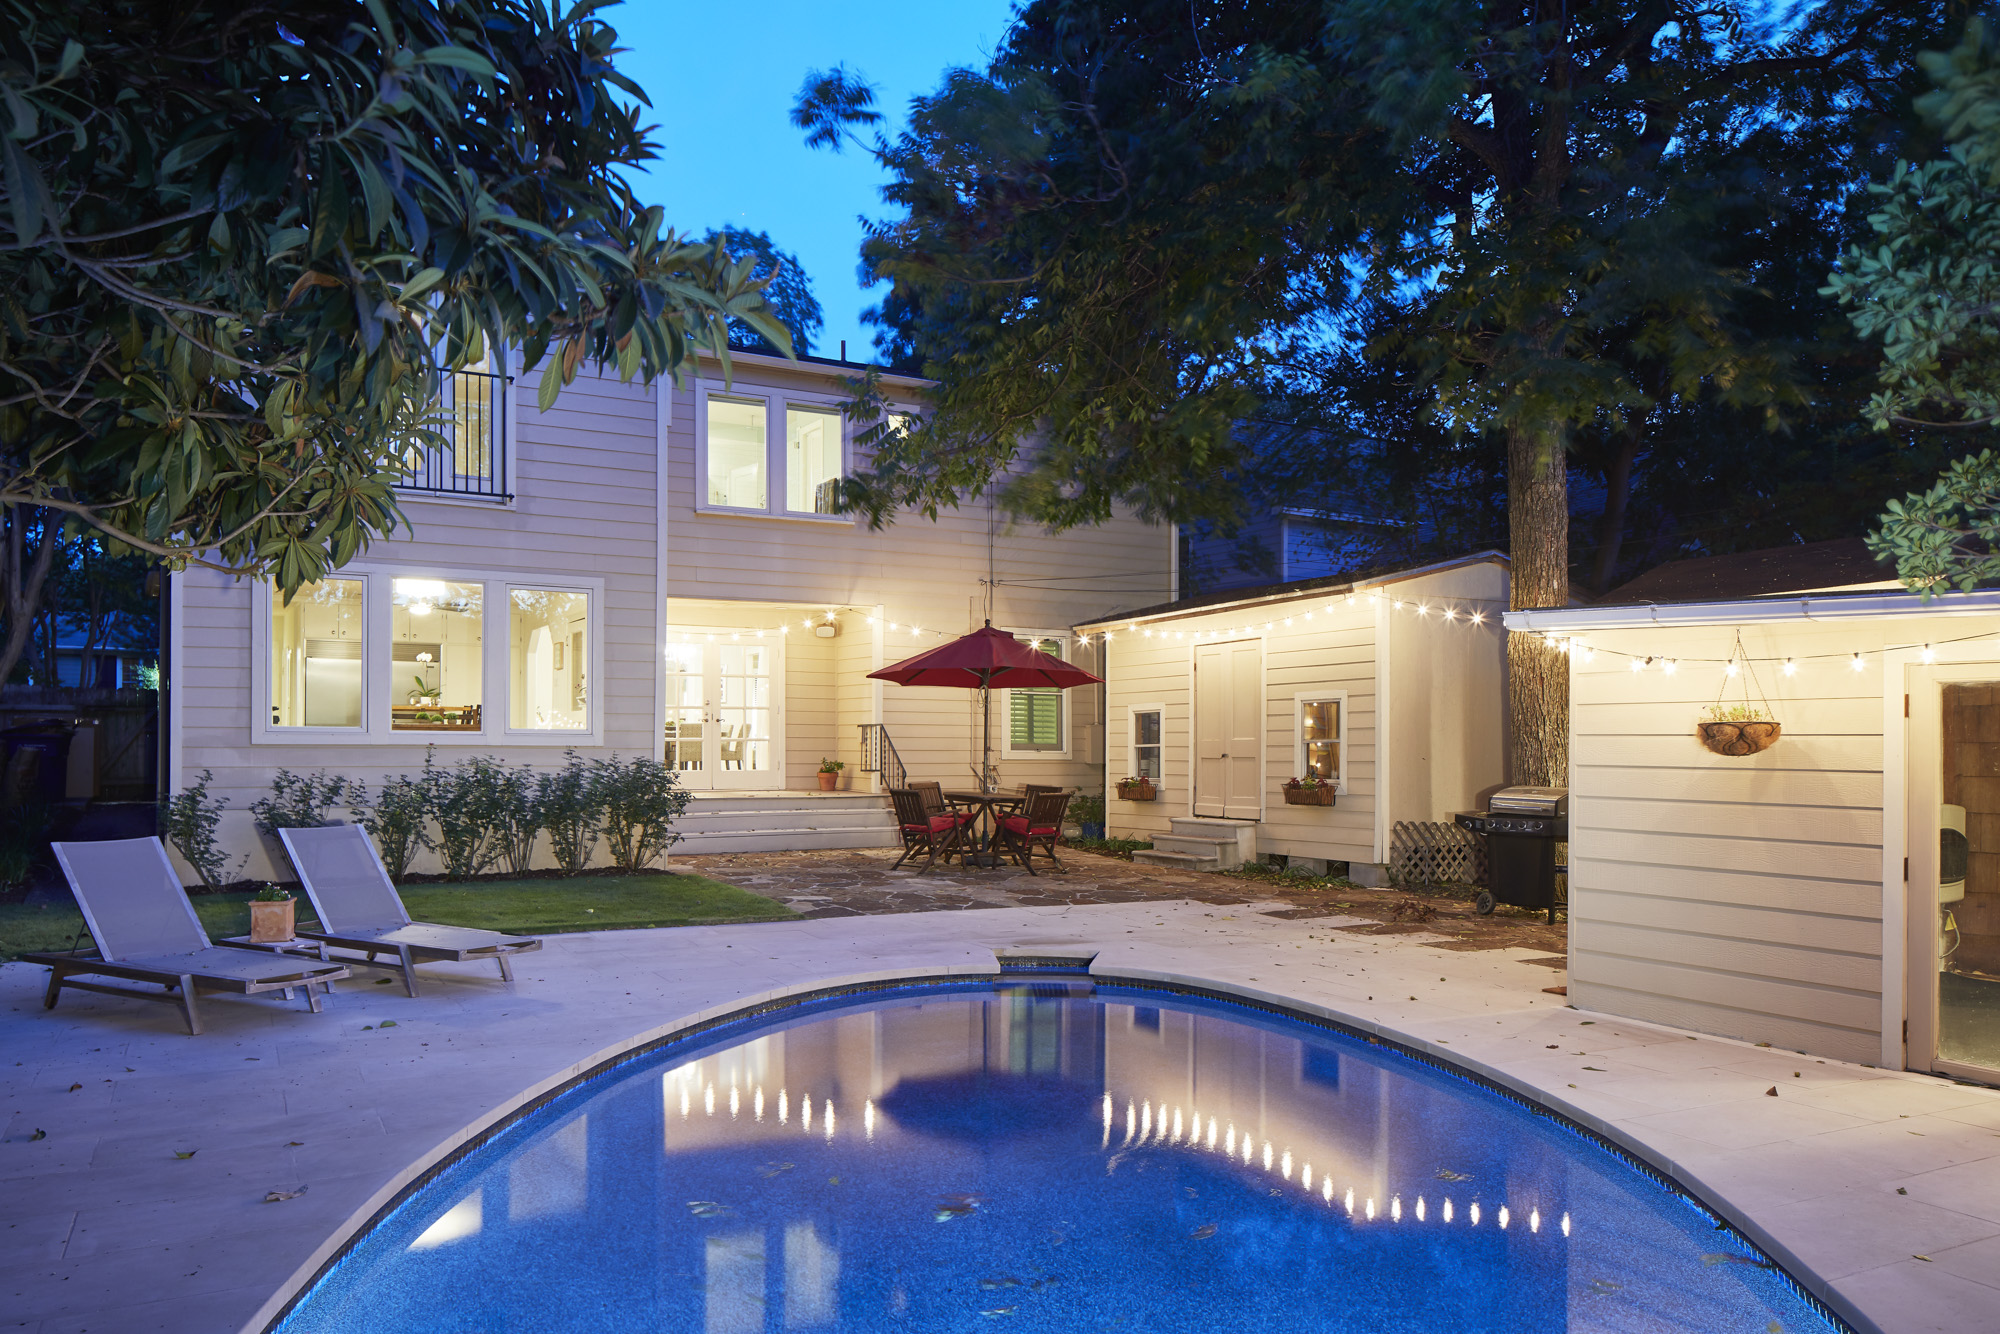 3202 Beverly road - Offered for $899,000